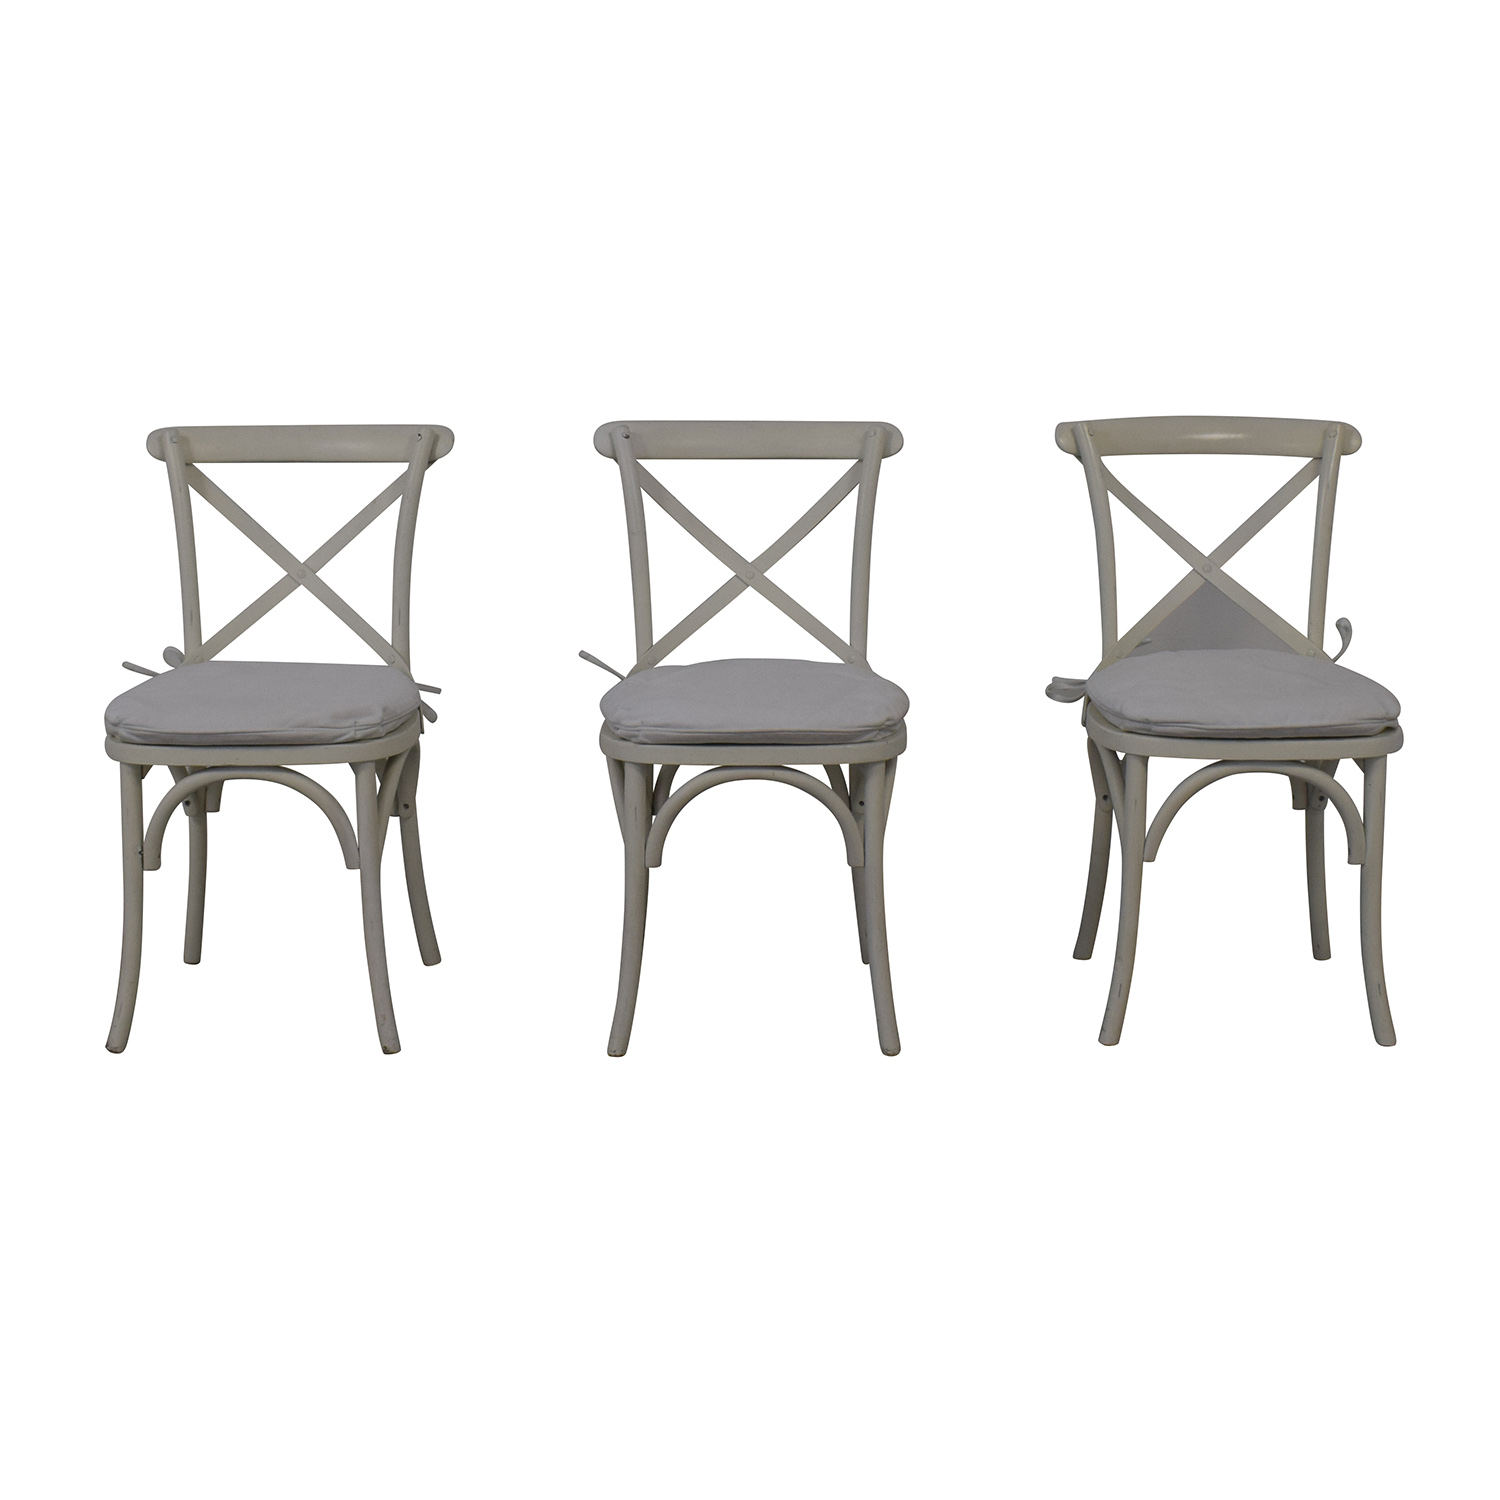 Restoration Hardware Dining Chairs 68 Off Restoration Hardware Restoration Hardware Madeline Chairs With Covers Chairs